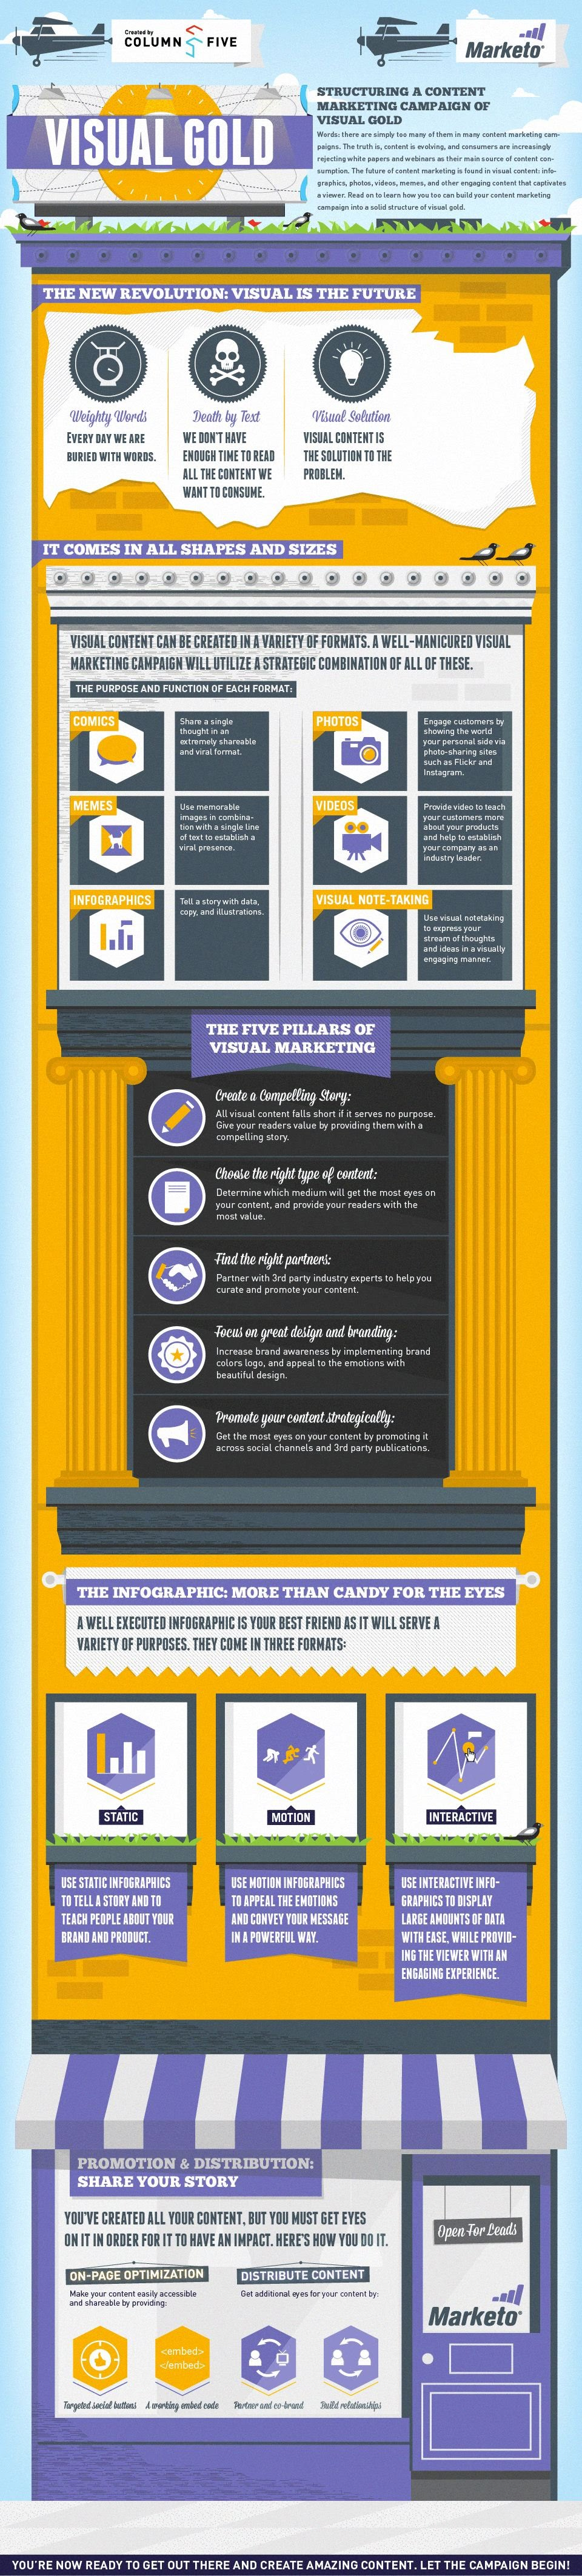 Visual Gold! The New Revolution of Content Marketing - #Infographic